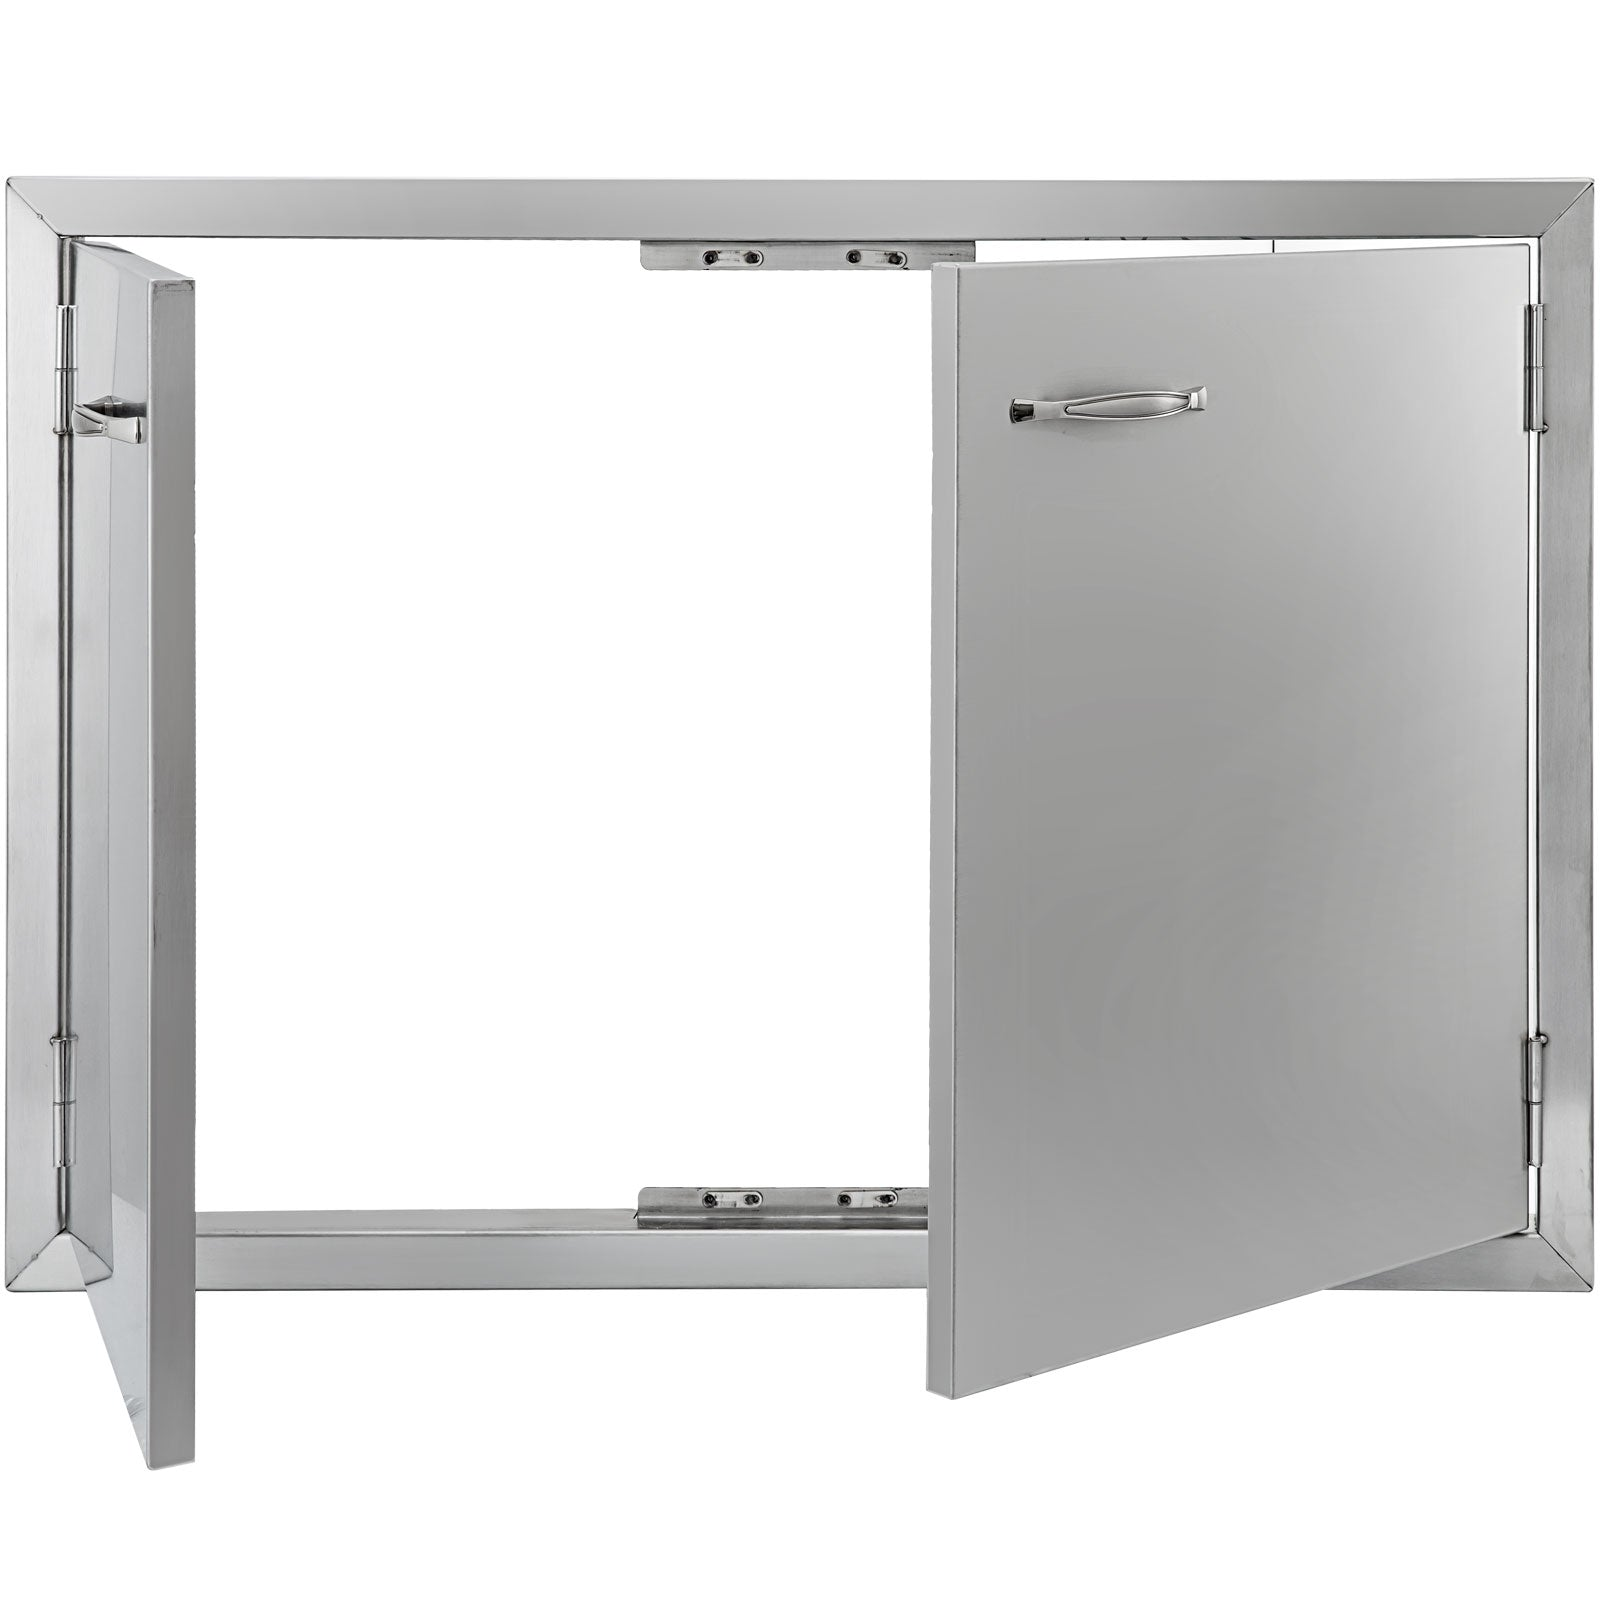 "33"" Stainless Steel Double Access Bbq Door Professional Double Walled Grills"